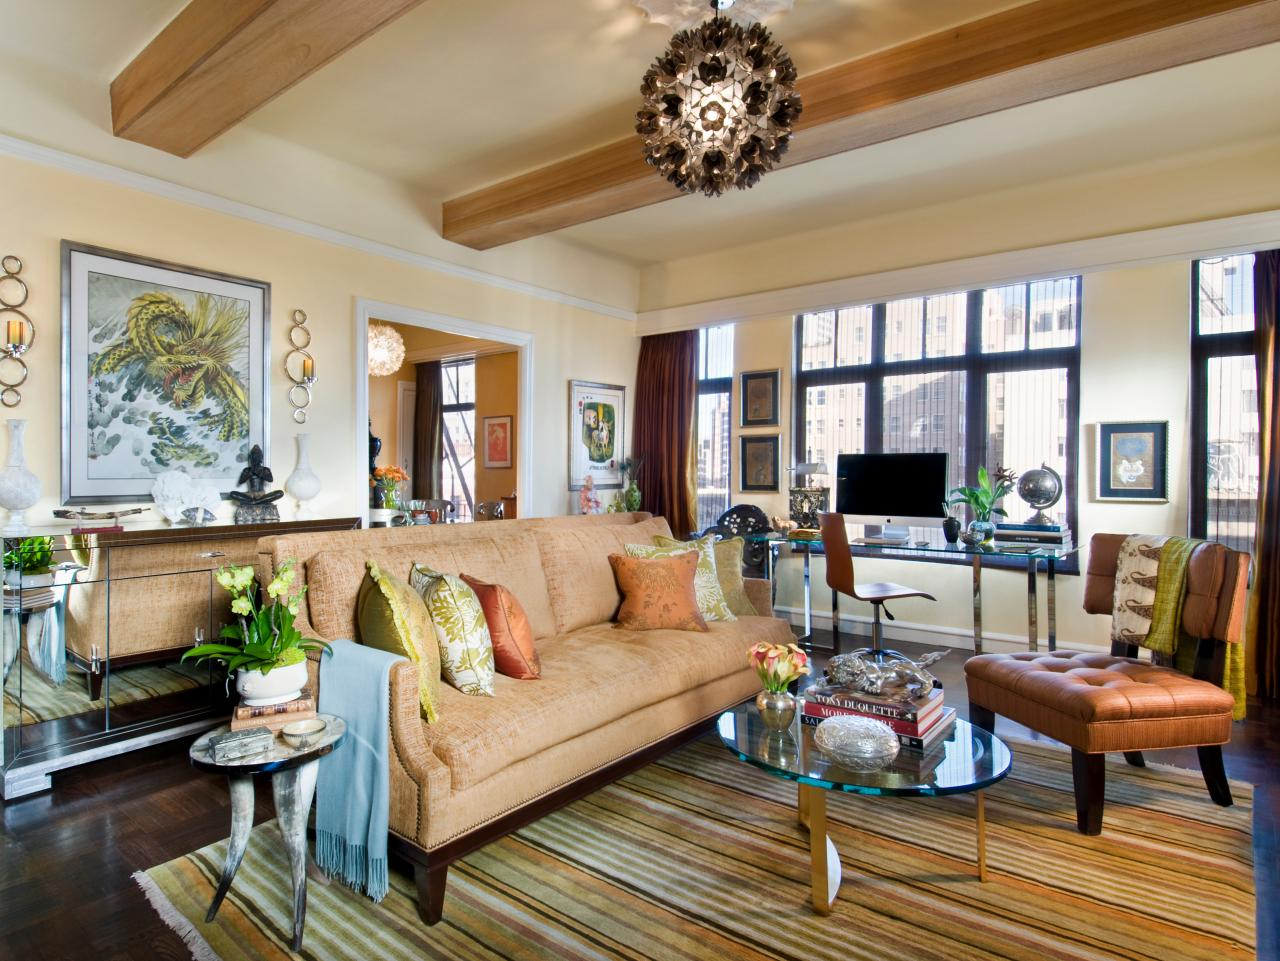 15+ Great Living Room Design Ideas